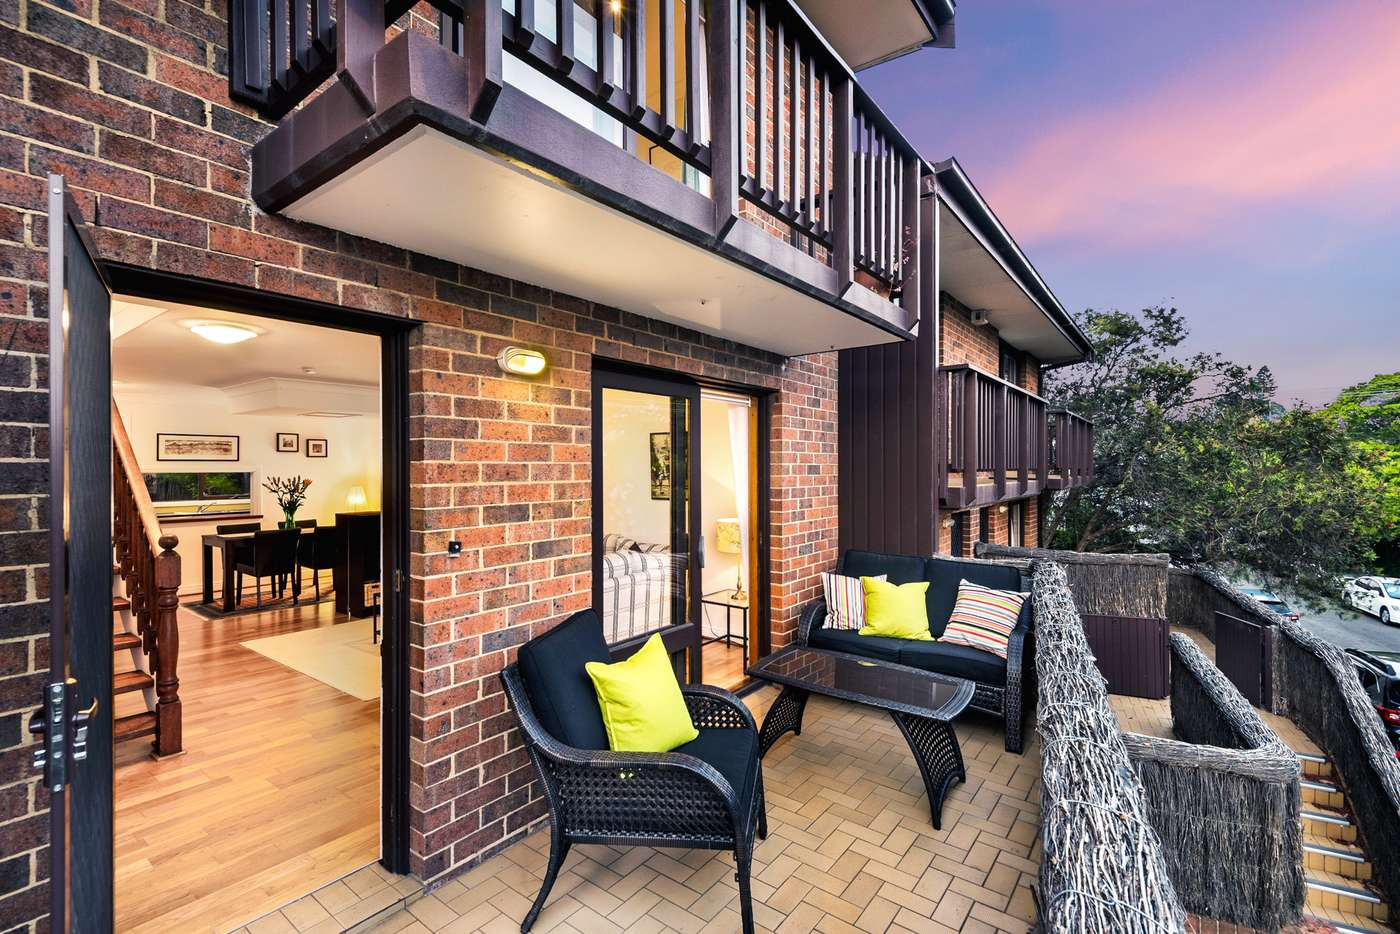 Main view of Homely house listing, 3/13-15 Withecombe Street, Rozelle NSW 2039